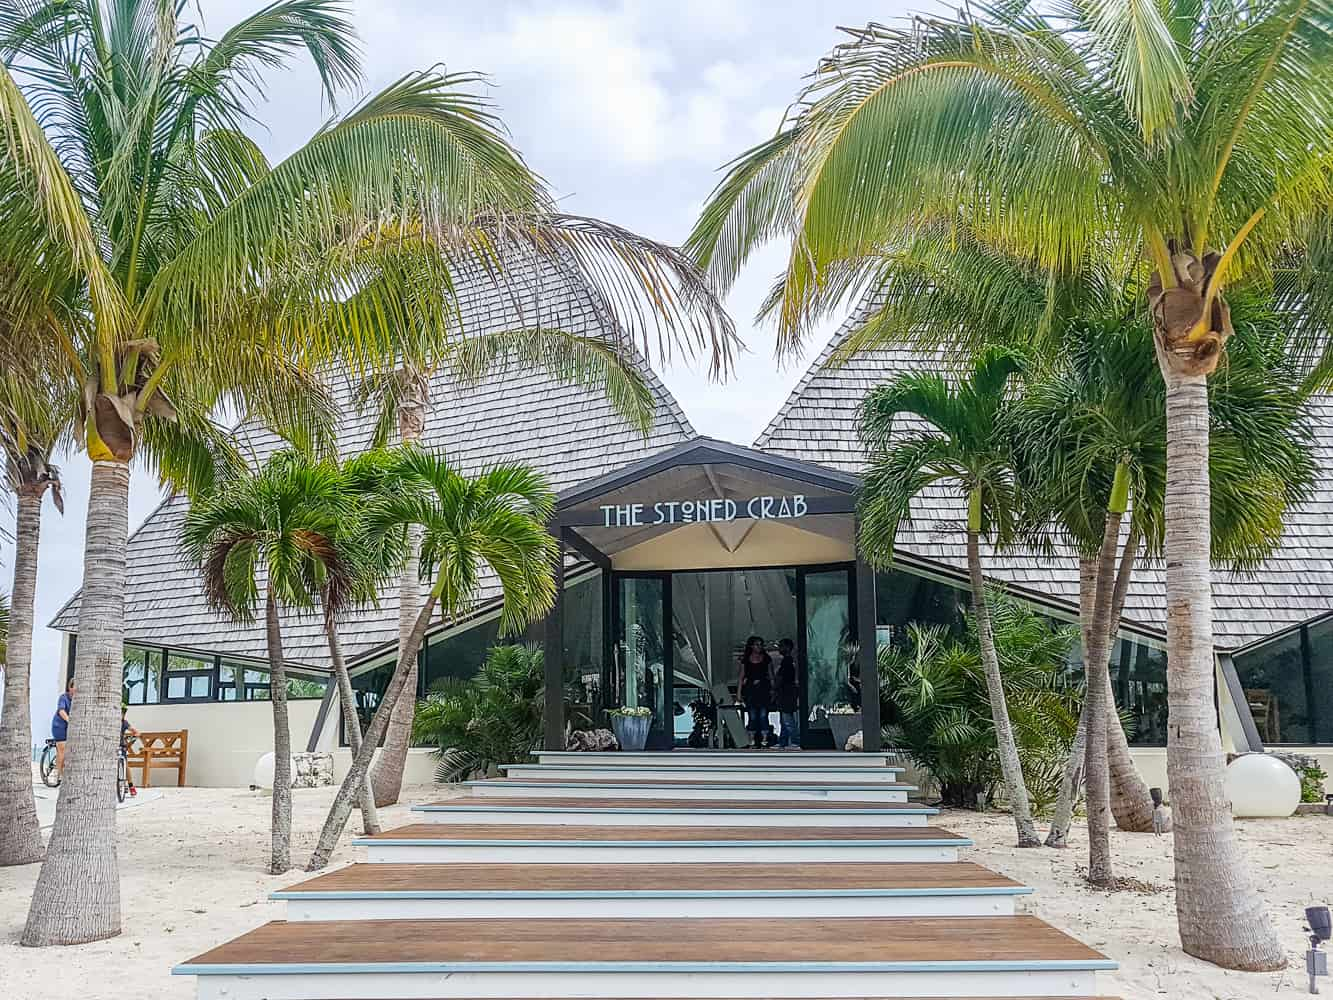 image of the stoned crab restaurant in freeport bahamas